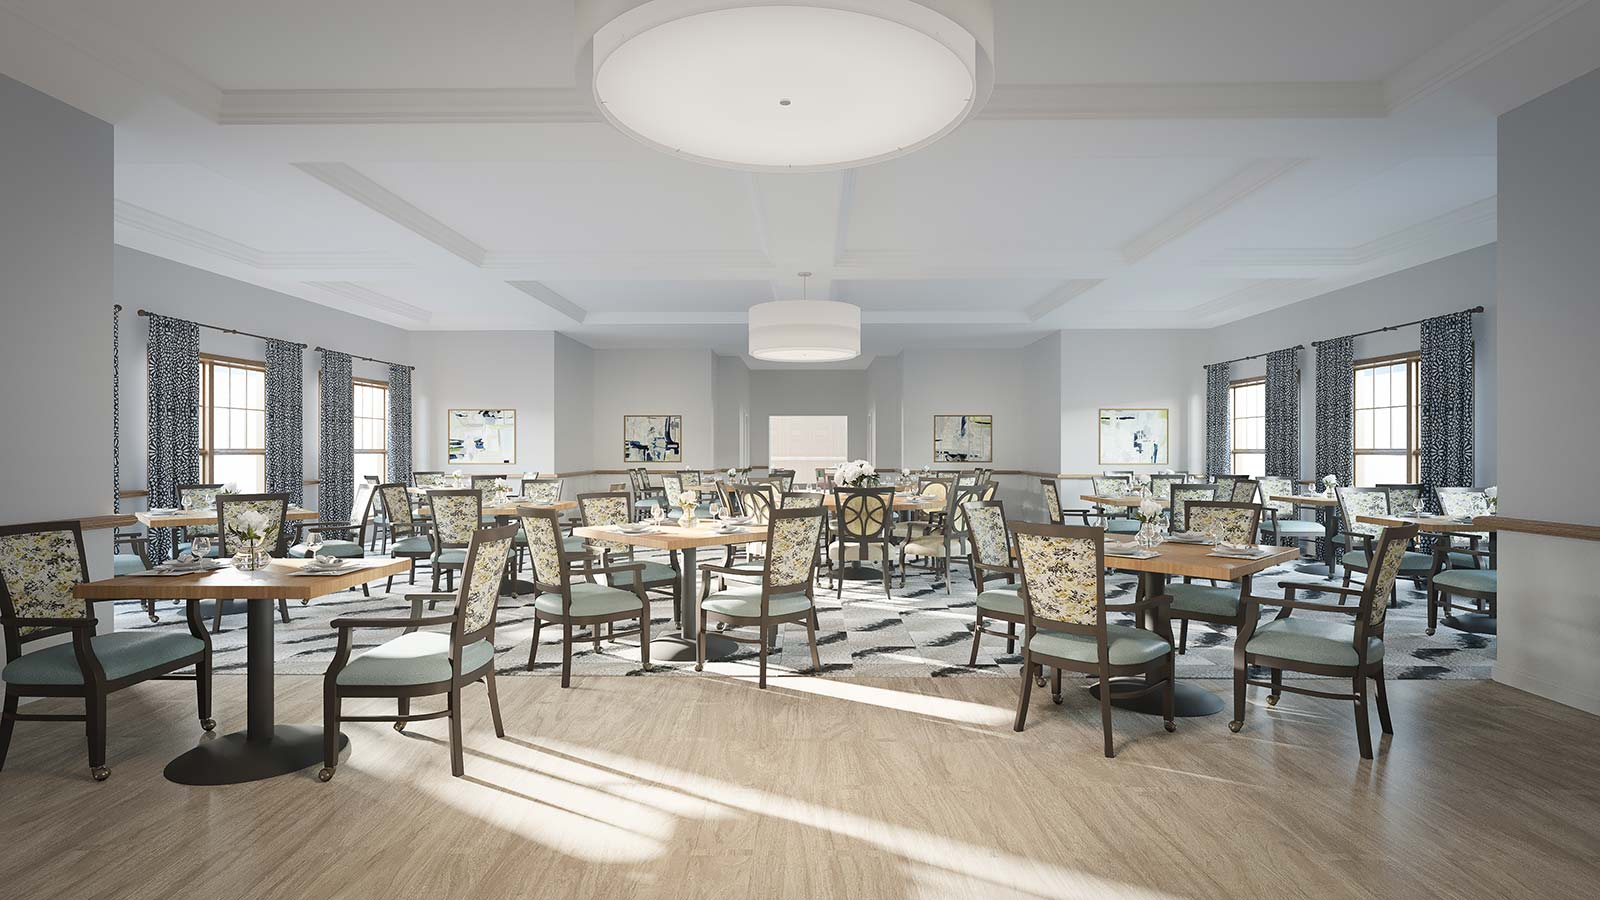 Rendering Of Assisted Living And Memory Care Dining Hall At Bay Port Of Fort Walton Beach